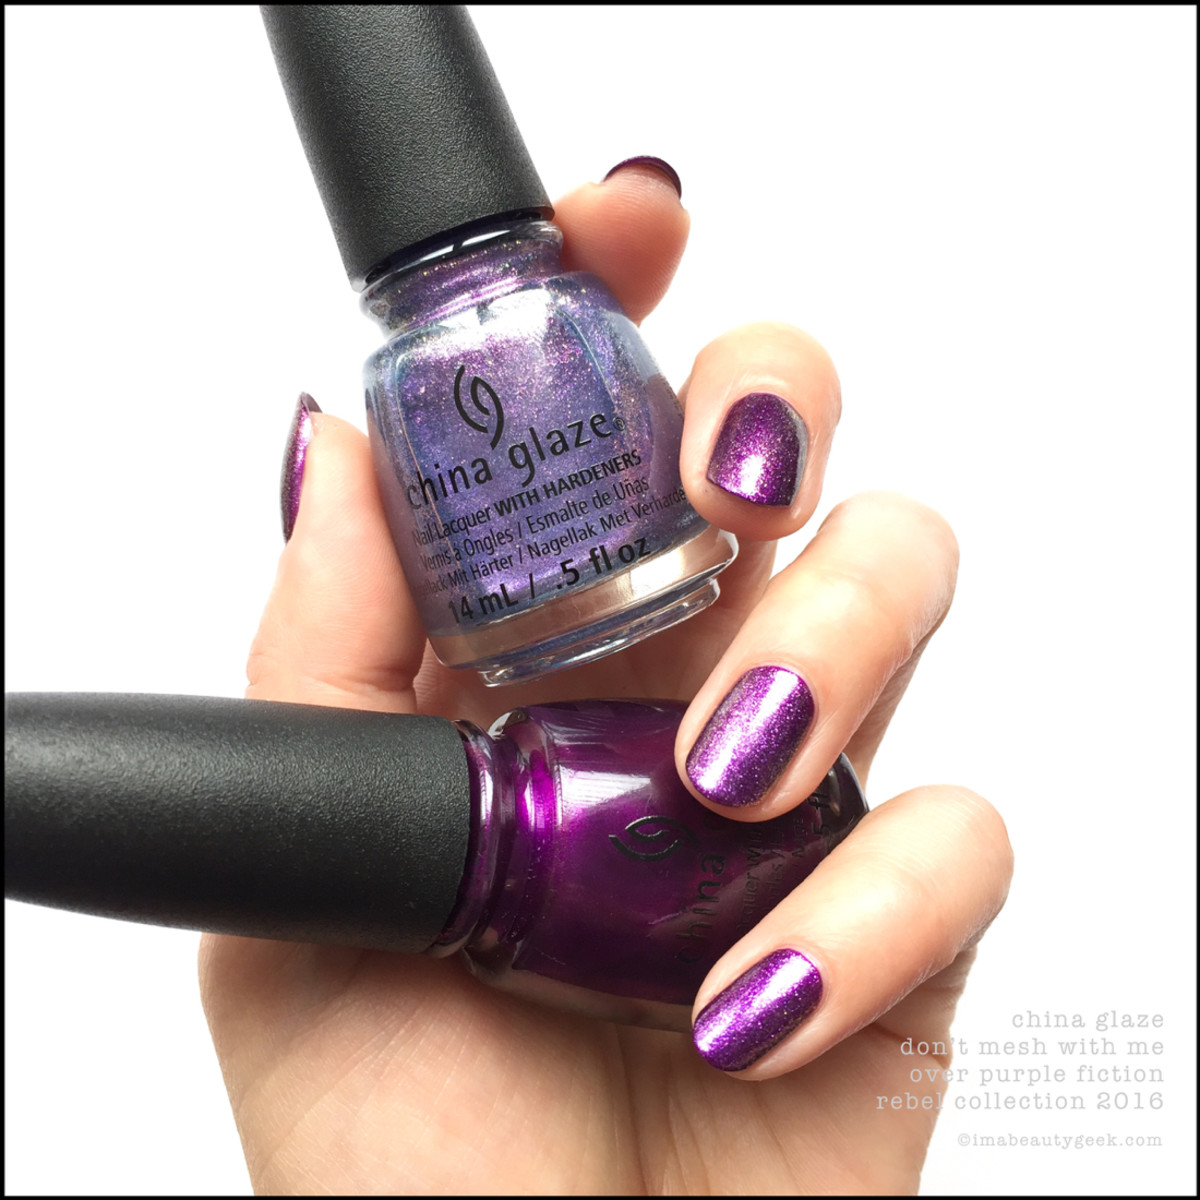 China Glaze Don't Mesh With Me over Purple Fiction_China Glaze Rebel 2016 Collection Swatches Review